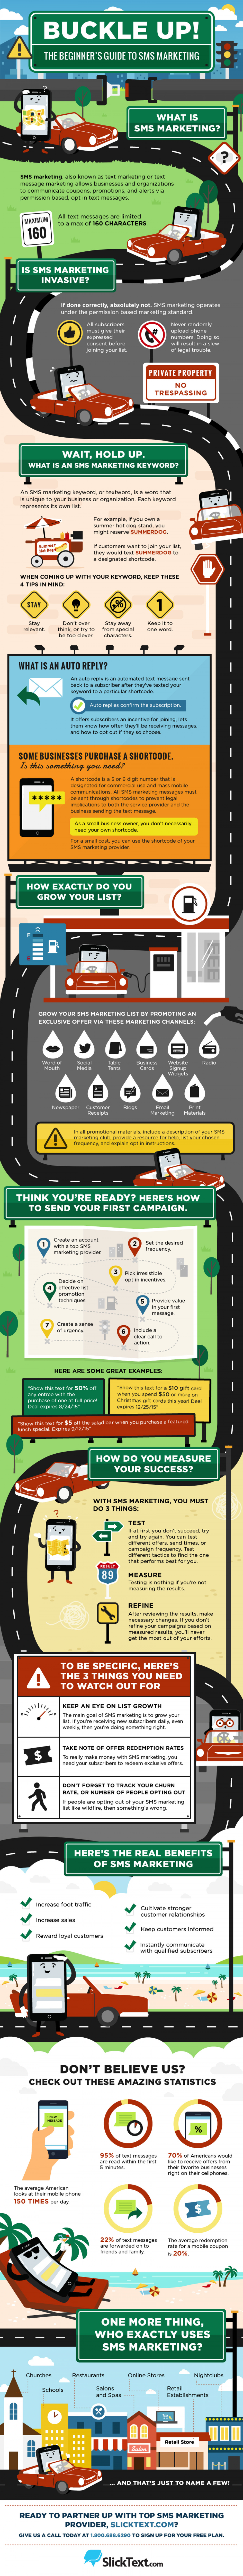 Buckle Up! The Beginner's Guide to SMS Marketing Infographic